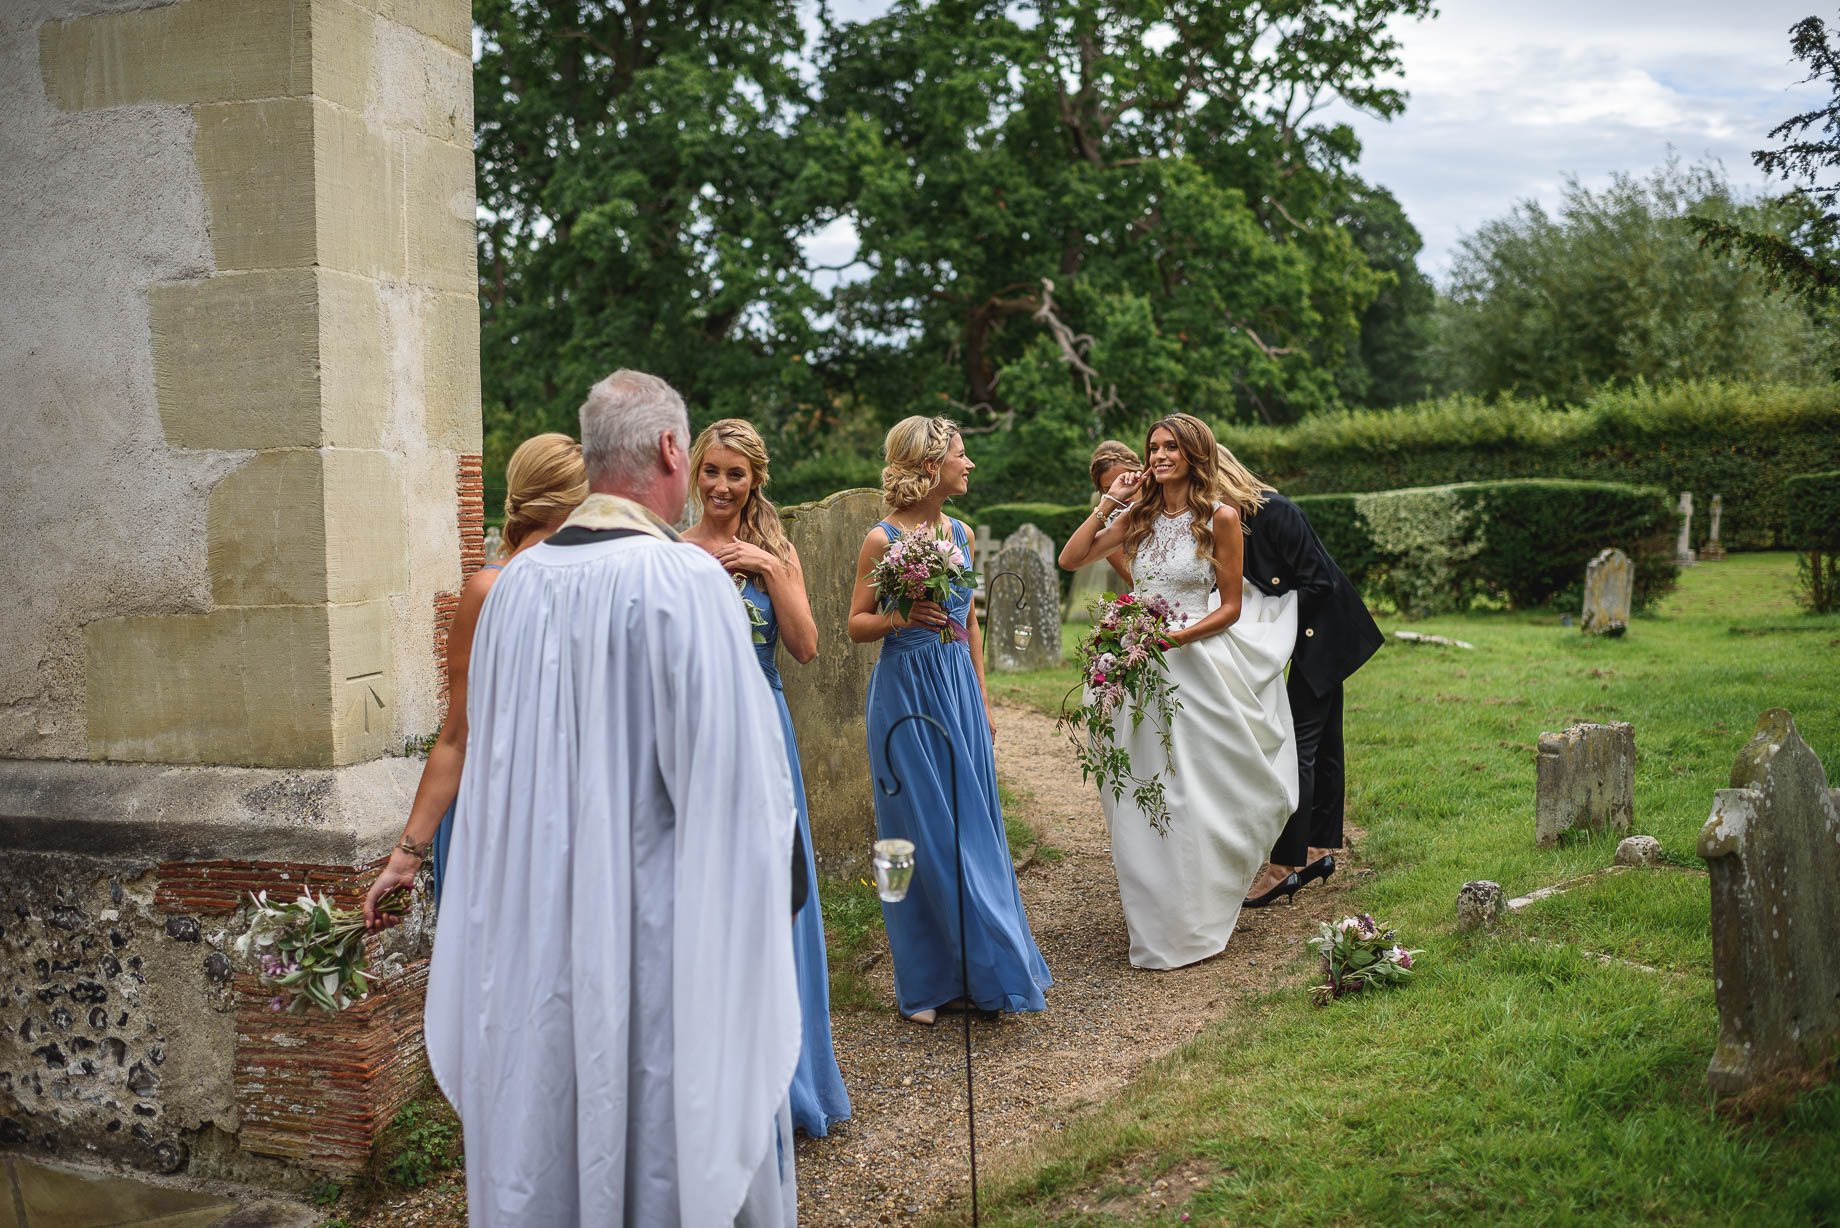 surrey-wedding-photography-guy-collier-photography-claire-and-tom-73-of-227